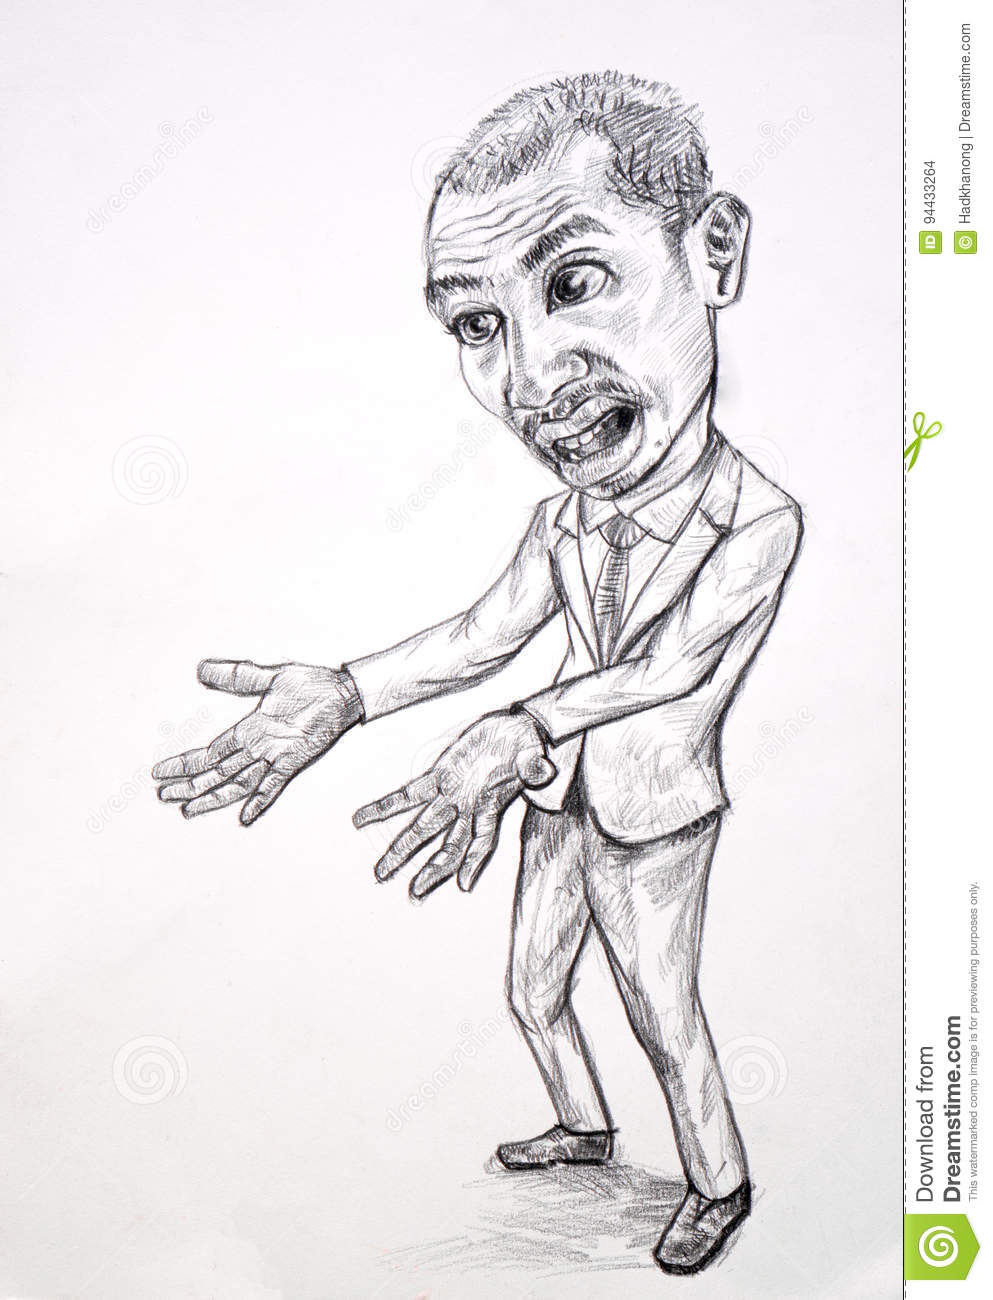 Pencil drawing caricature of businessman in emotion of anger feeling of his bad hair day or was disappointed something not be as expect